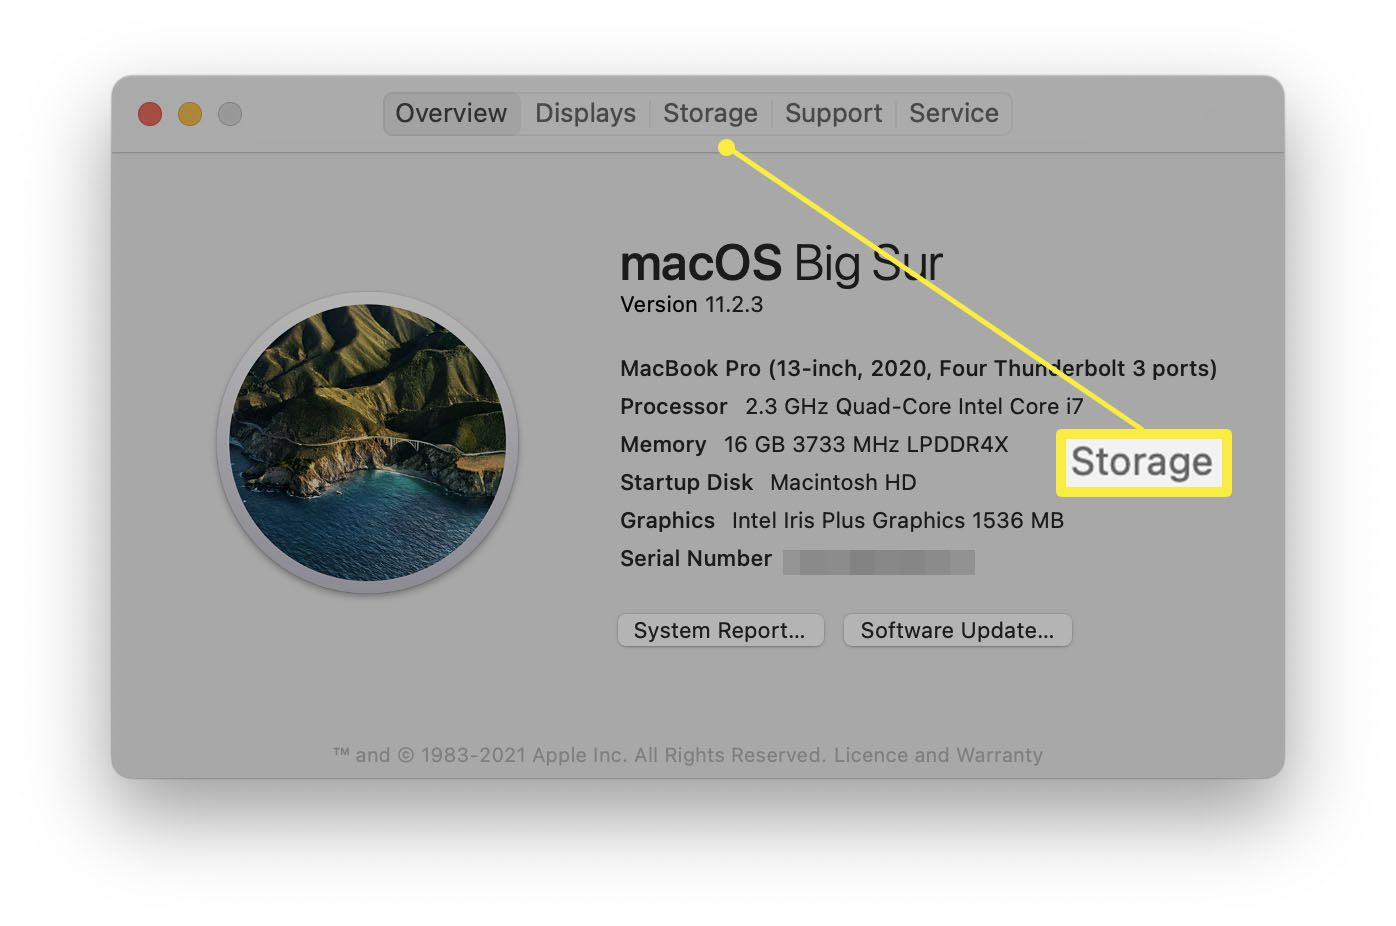 macOS About This Mac with Storage highlighted